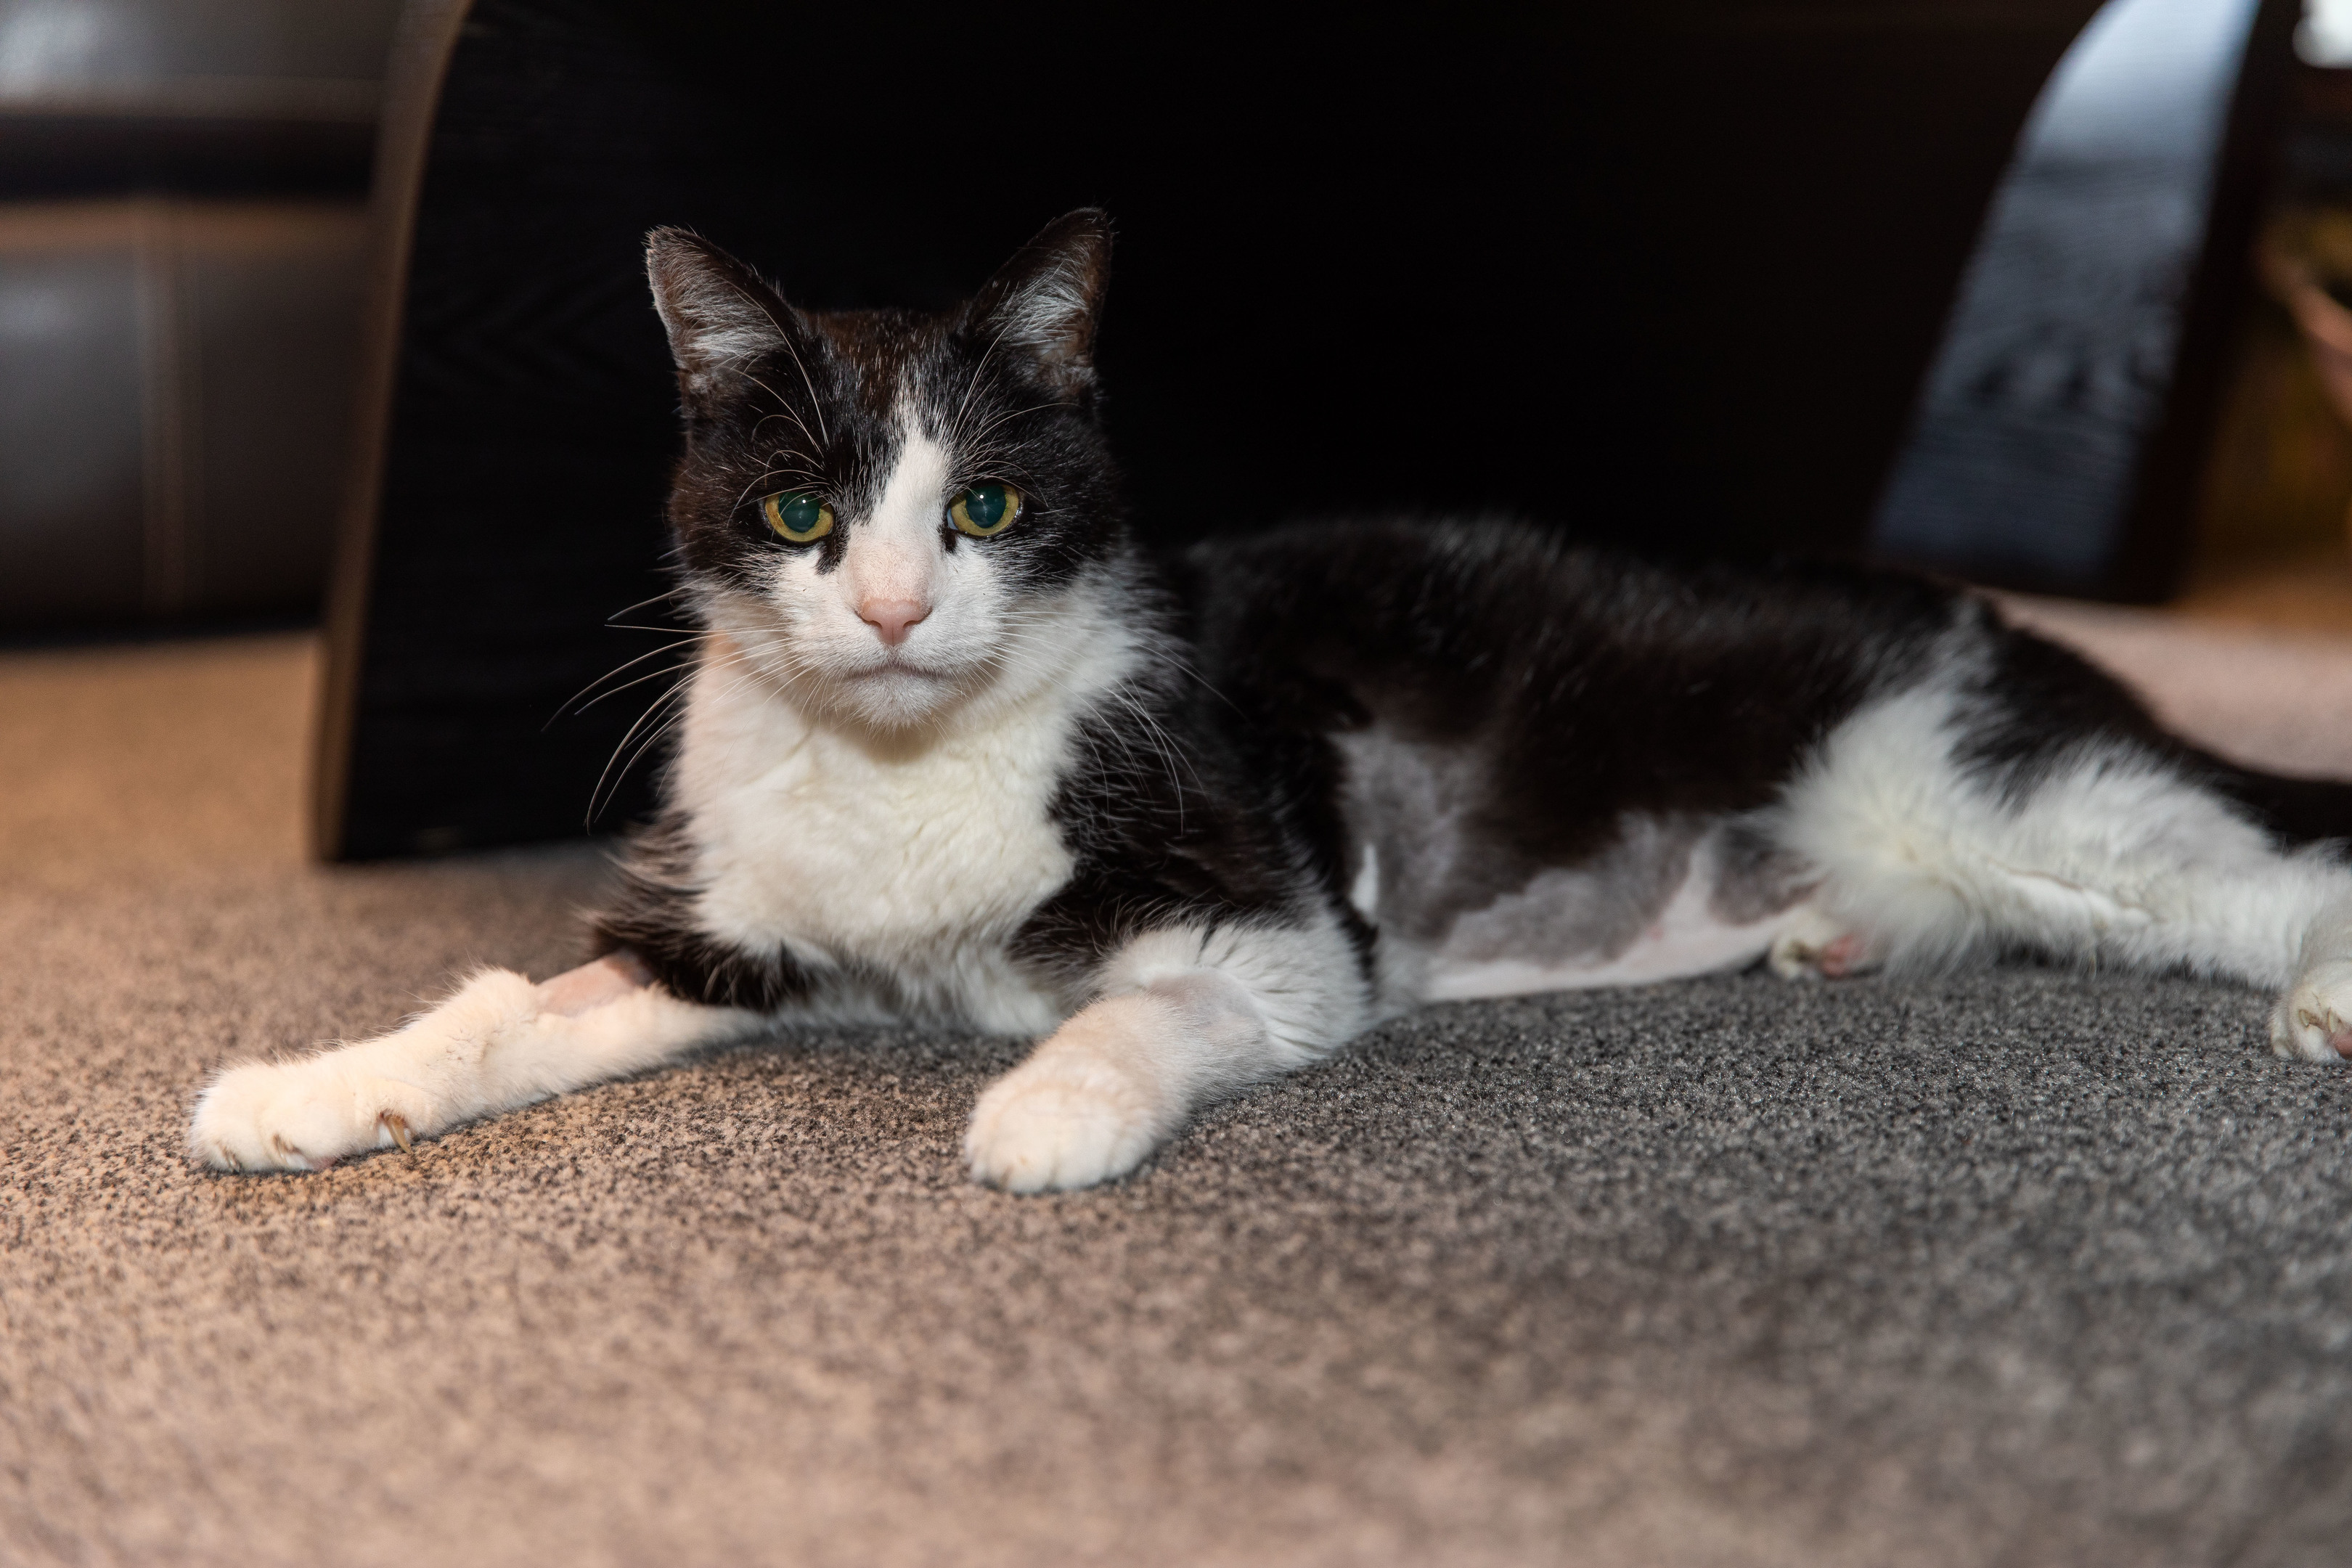 Levi the cat has been put down following his ordeal.